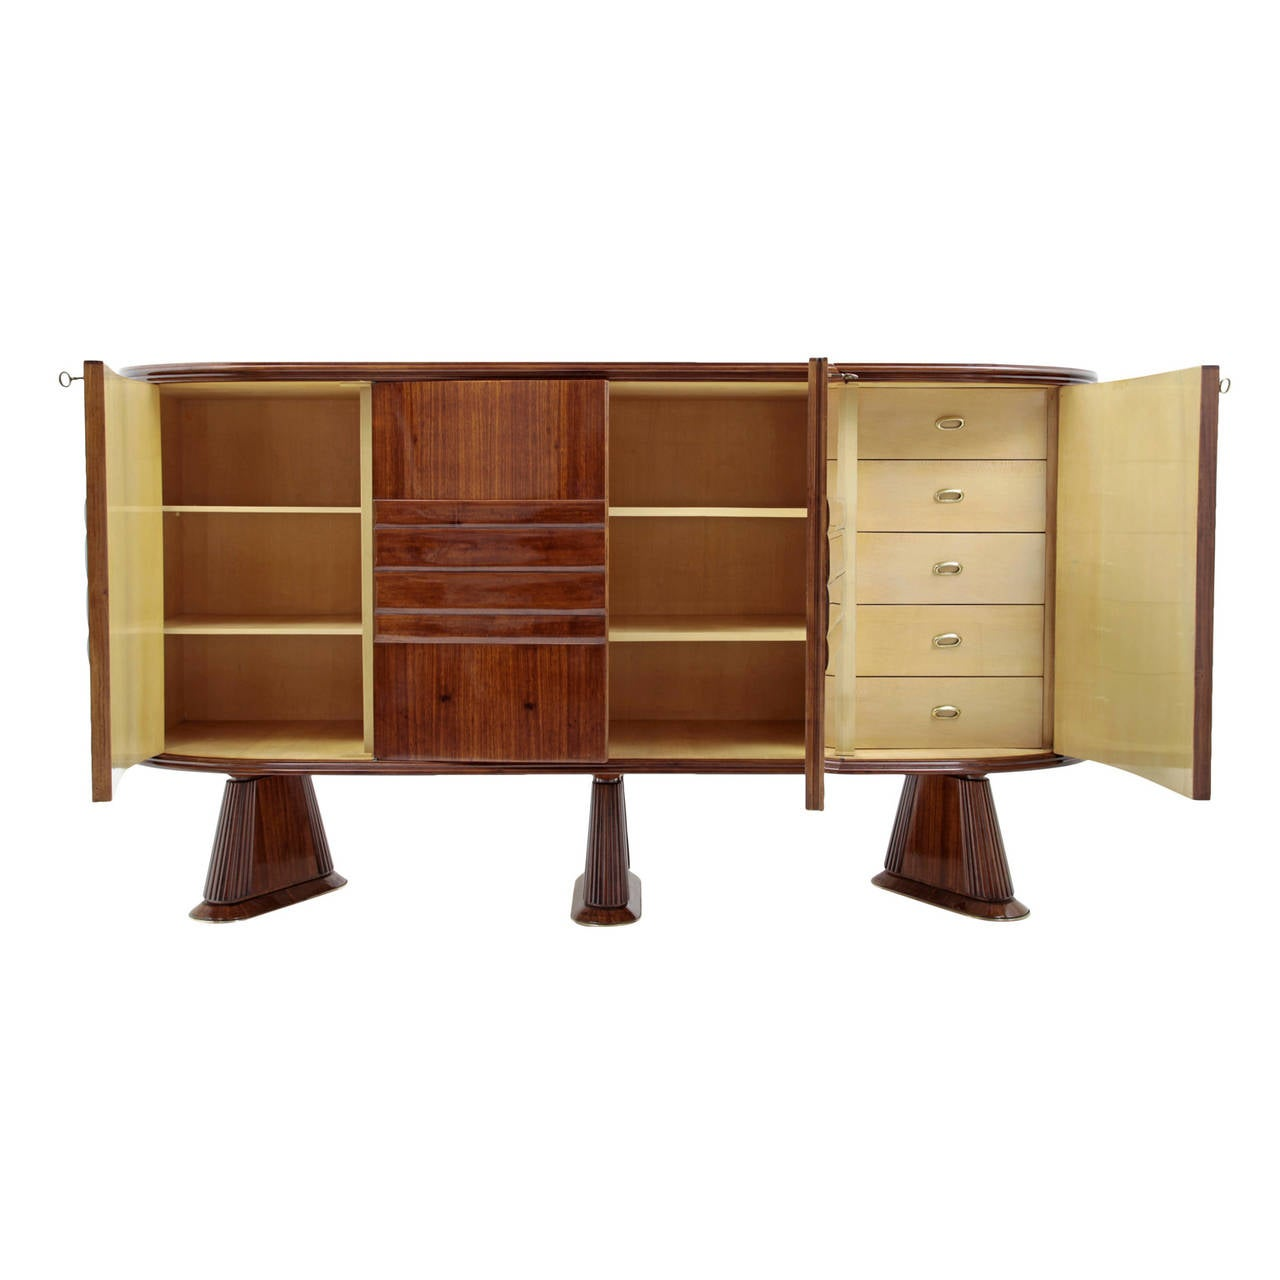 Elegant italian sideboard from the 1940s for sale at 1stdibs for Sideboard 2 50 m